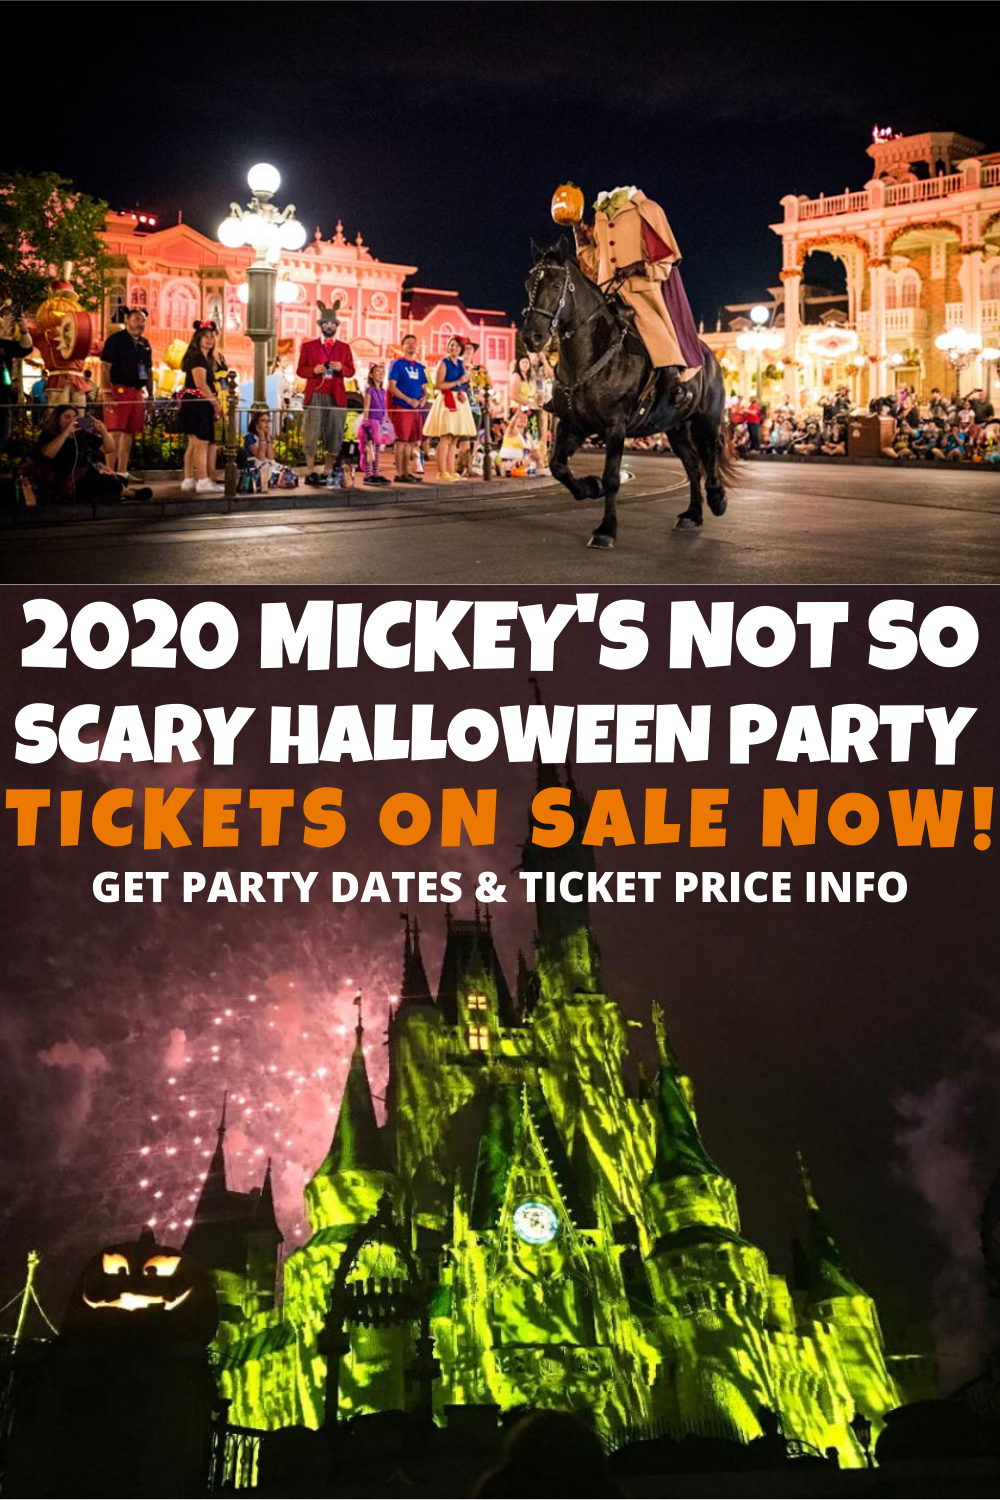 Halloween 2020 Dates Prices Mickey's Not So Scary Halloween Party 2020 Dates,Tickets, and